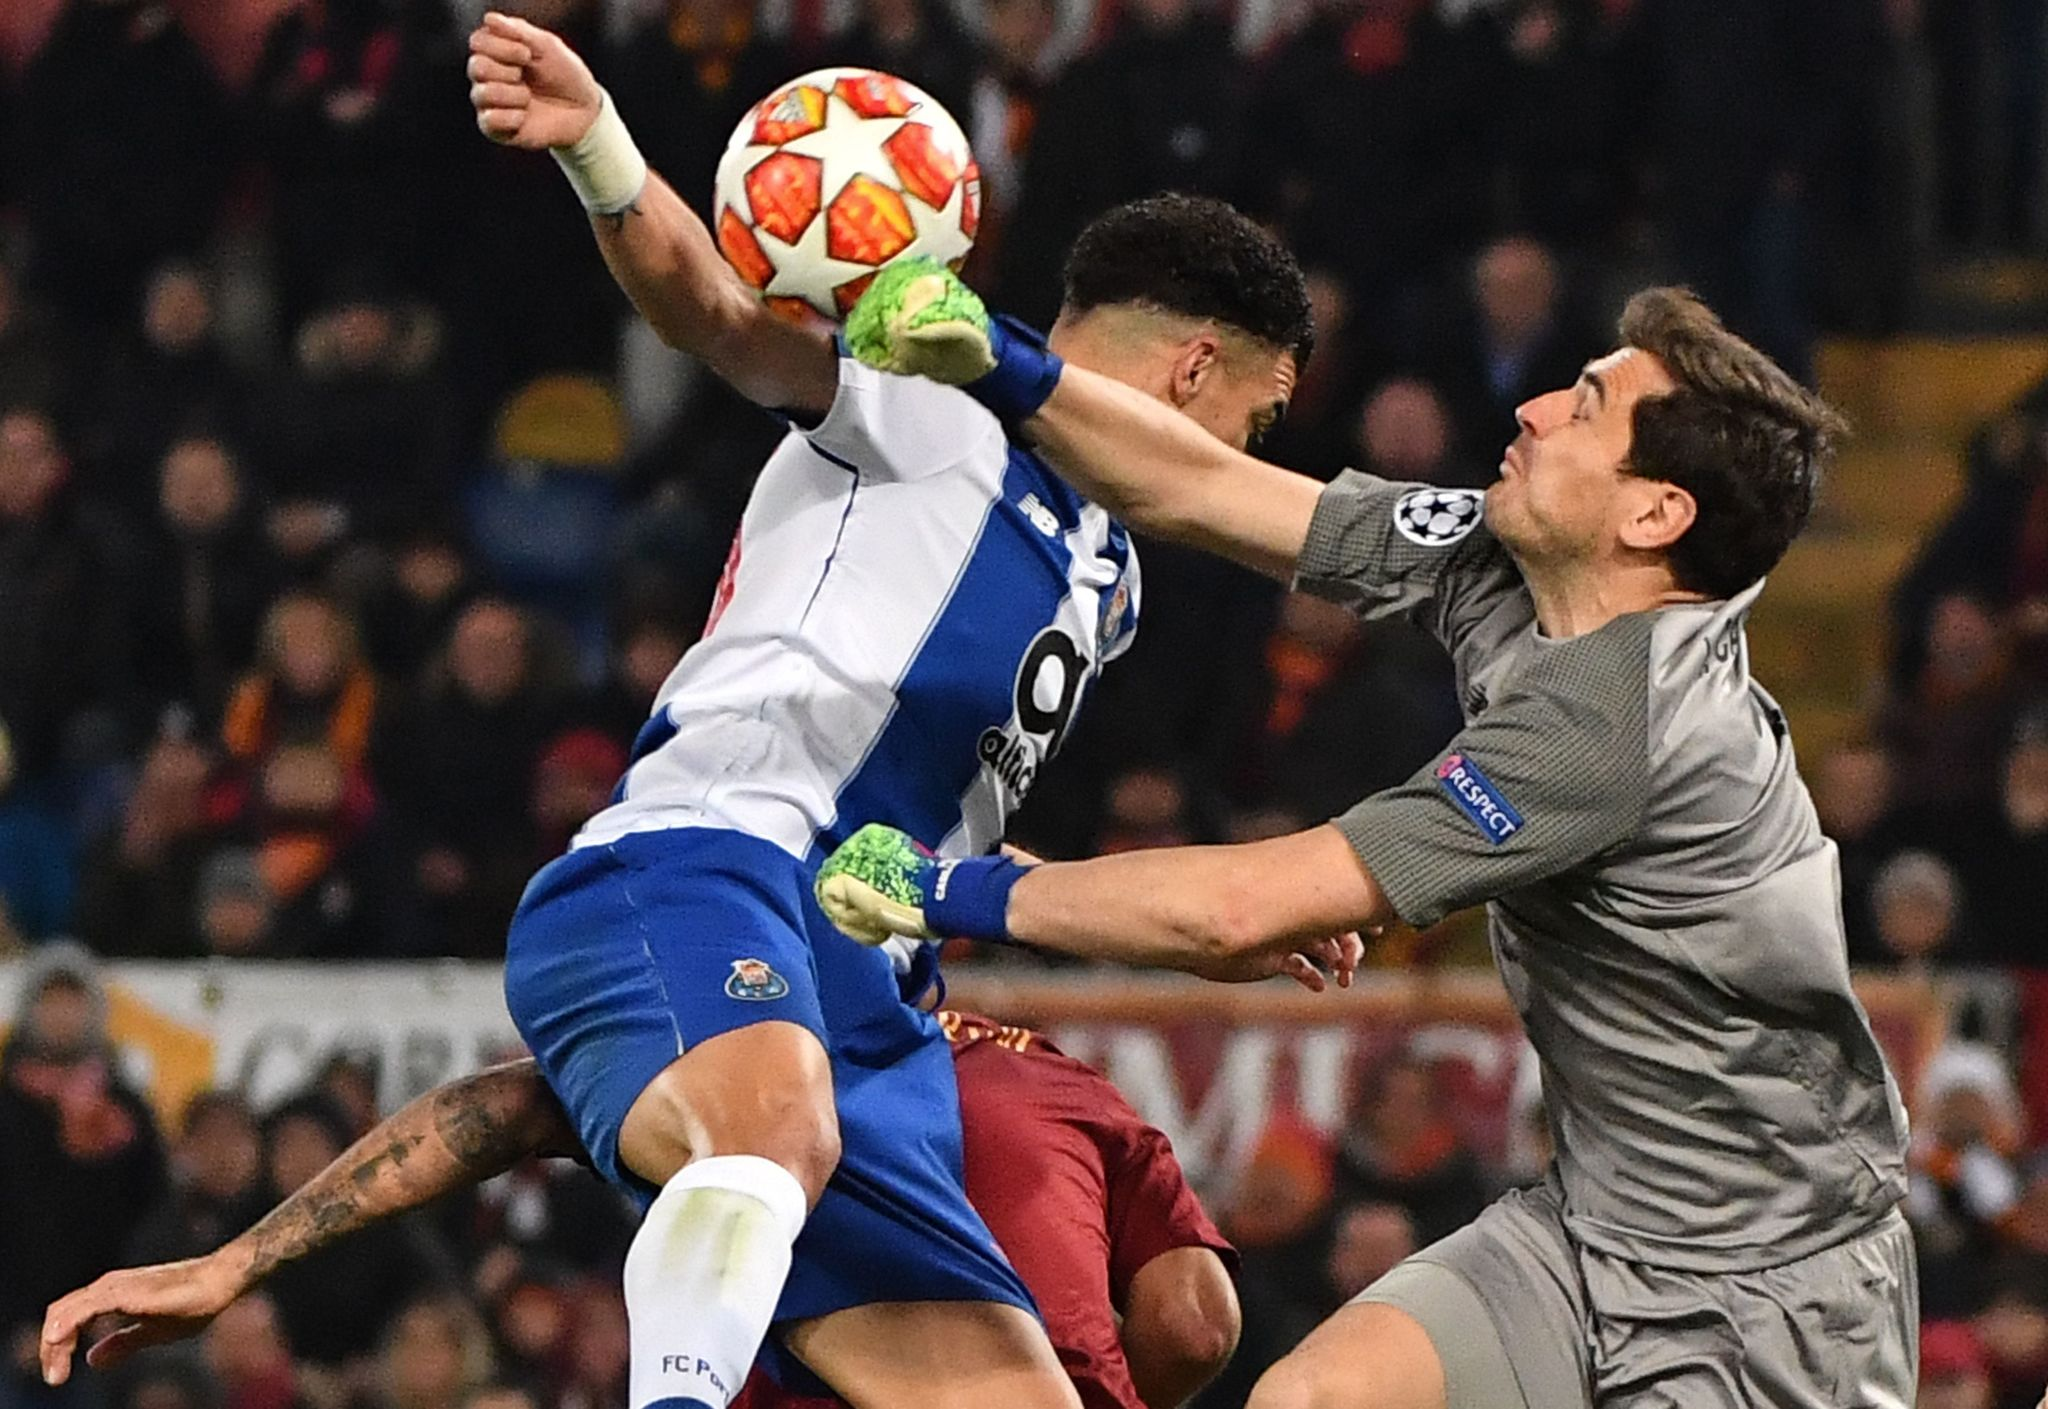 Portos Spanish goalkeeper Iker Casillas (R) defelcts a shot as Portos Brazilian defender Pepe (C) goes for a header during the UEFA Champions League round of 16, first leg football match AS Roma vs FC Porto on February 12, 2019 at the Olympic stadium in Rome. (Photo by Andreas SOLARO / AFP)